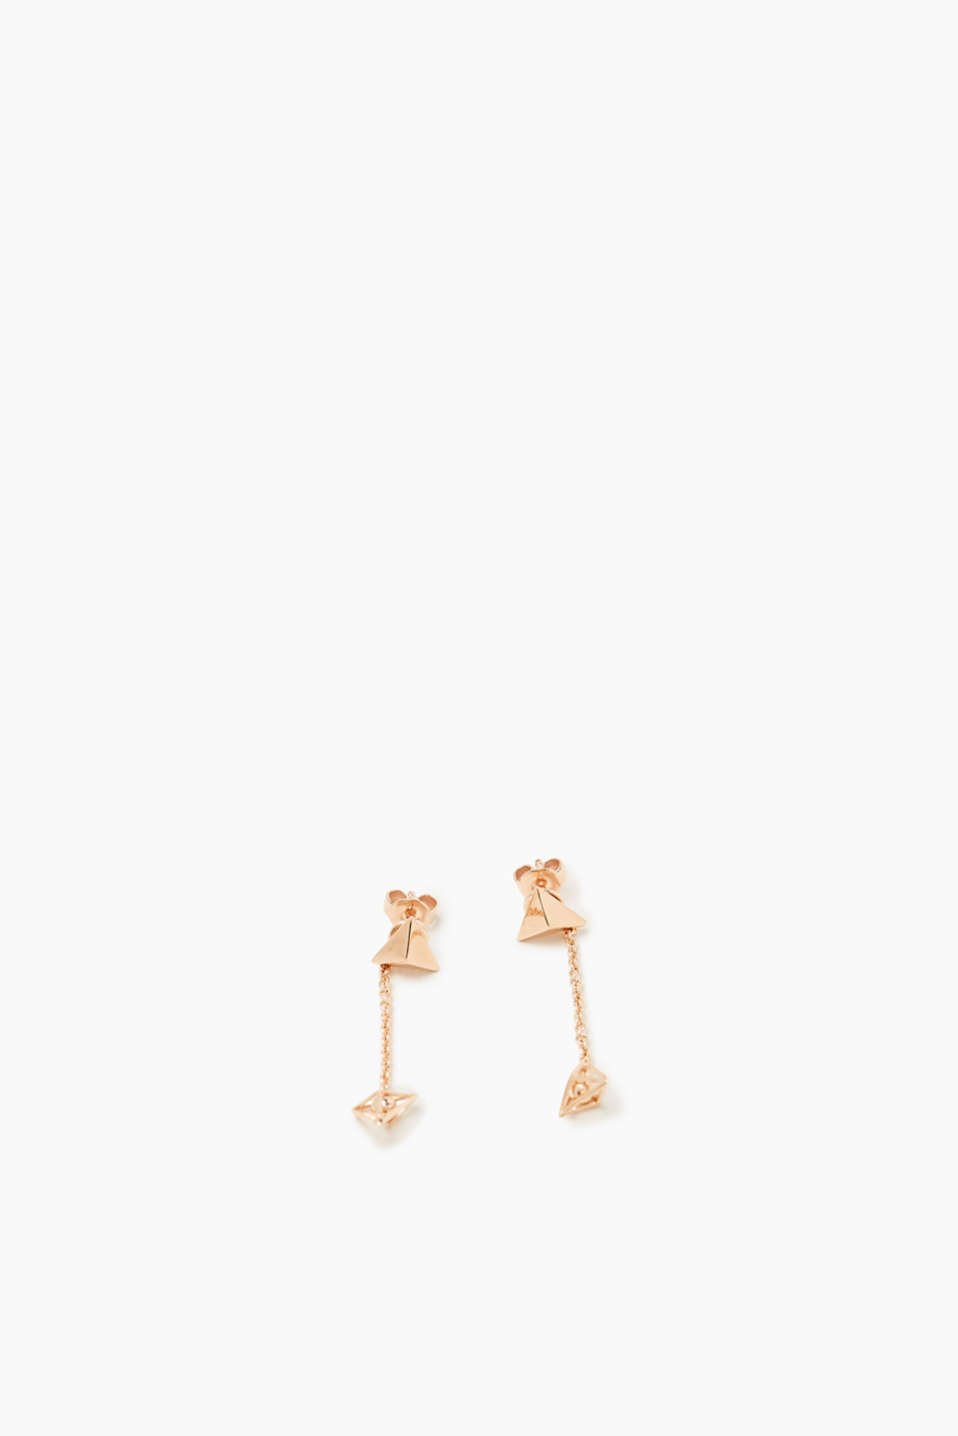 We love rose gold! These fine, modern earrings are finished in sterling silver.